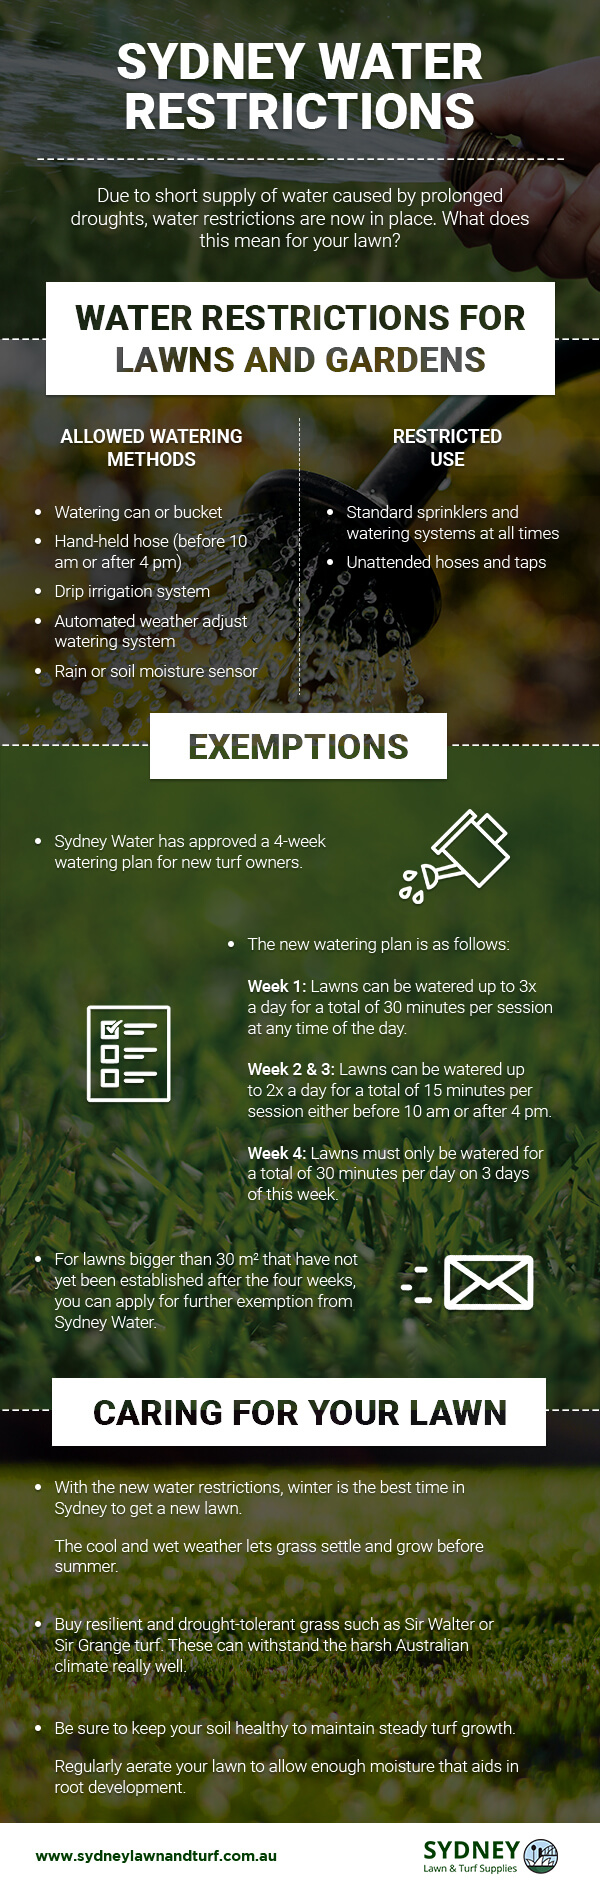 Lawn water restrictions in Sydney infographic